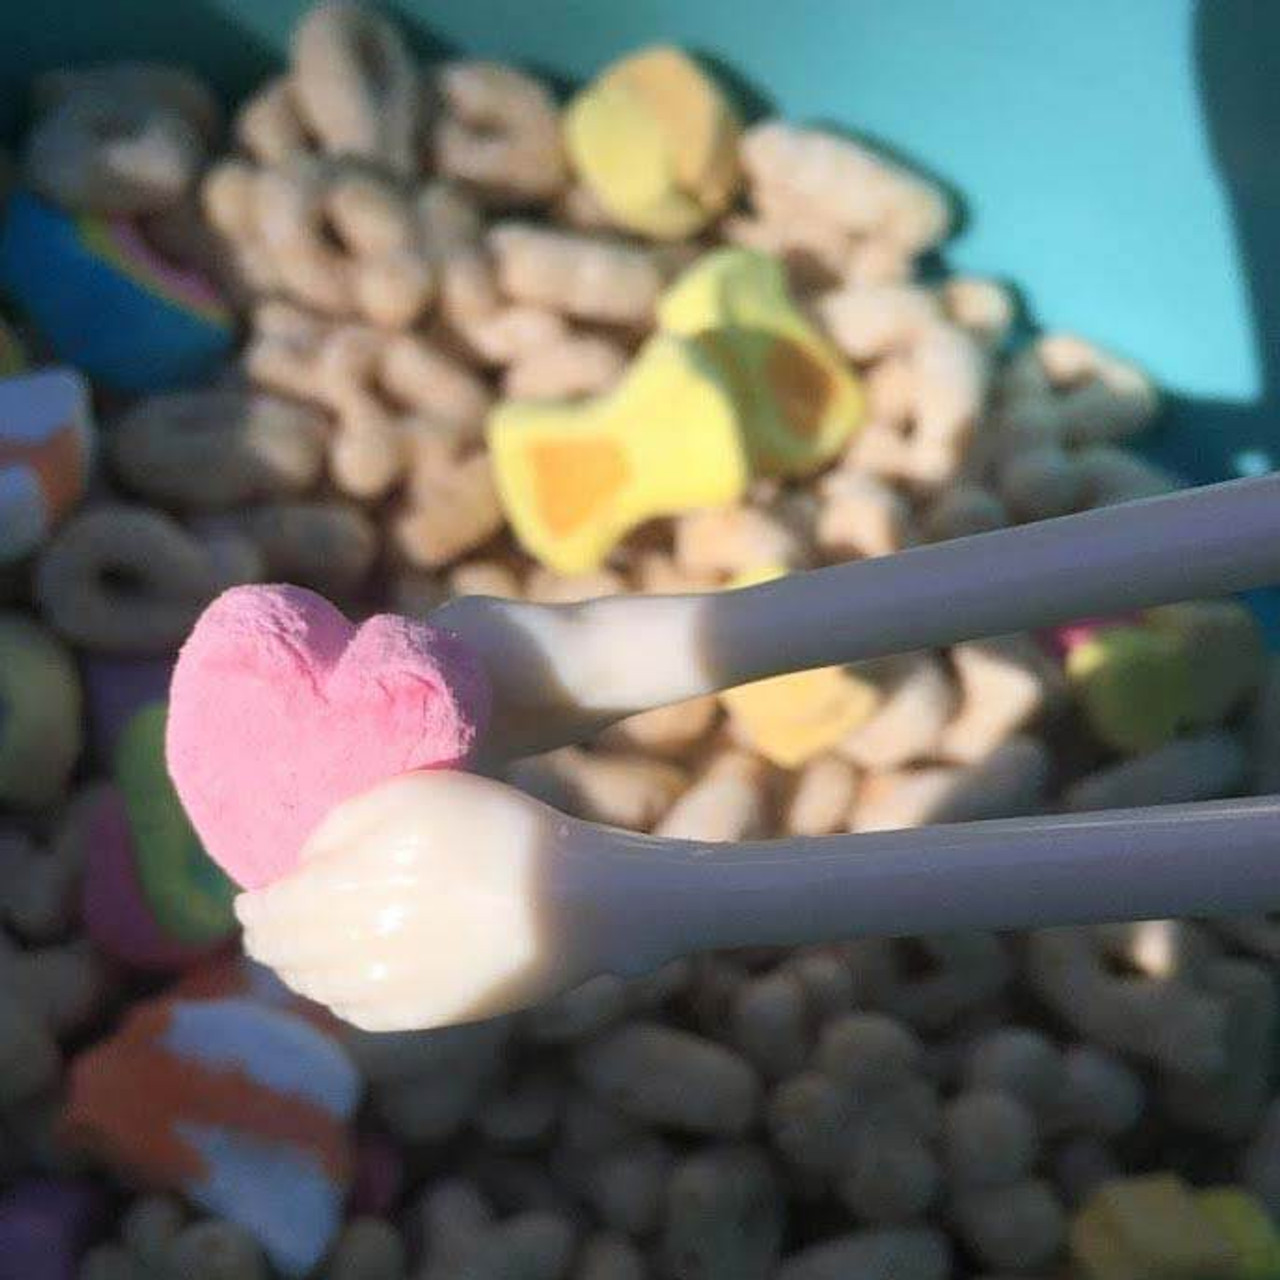 We <3 searching for marshmallows in your cereal!